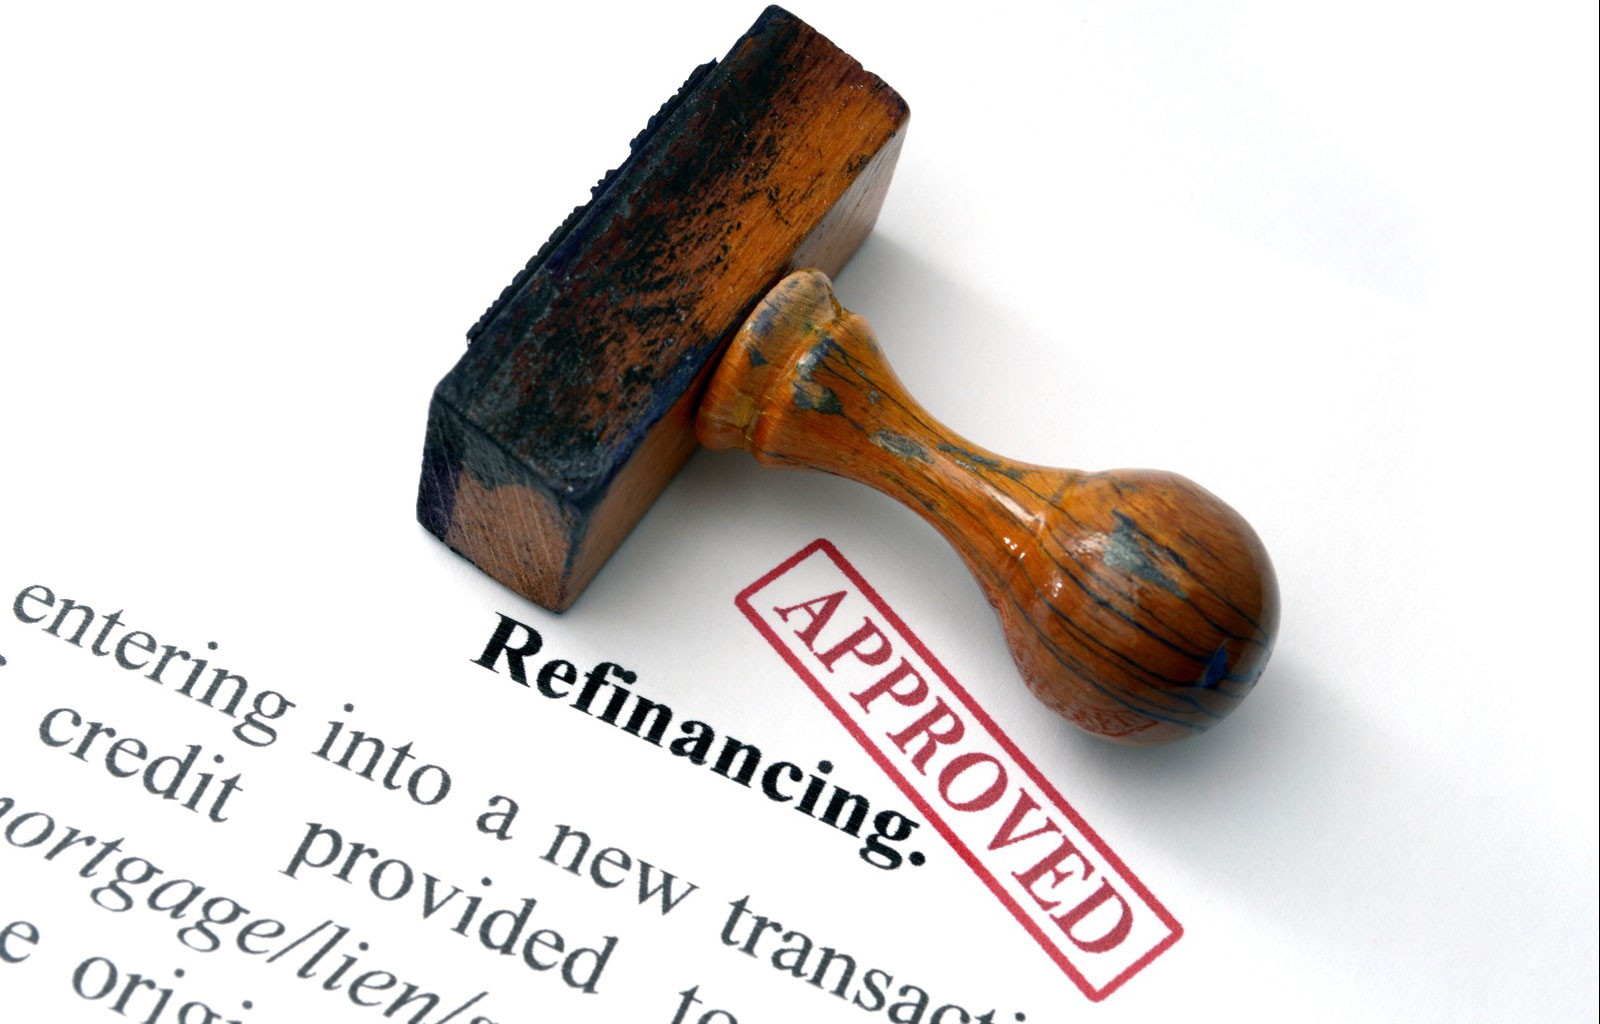 Refinancing for the right reasons.